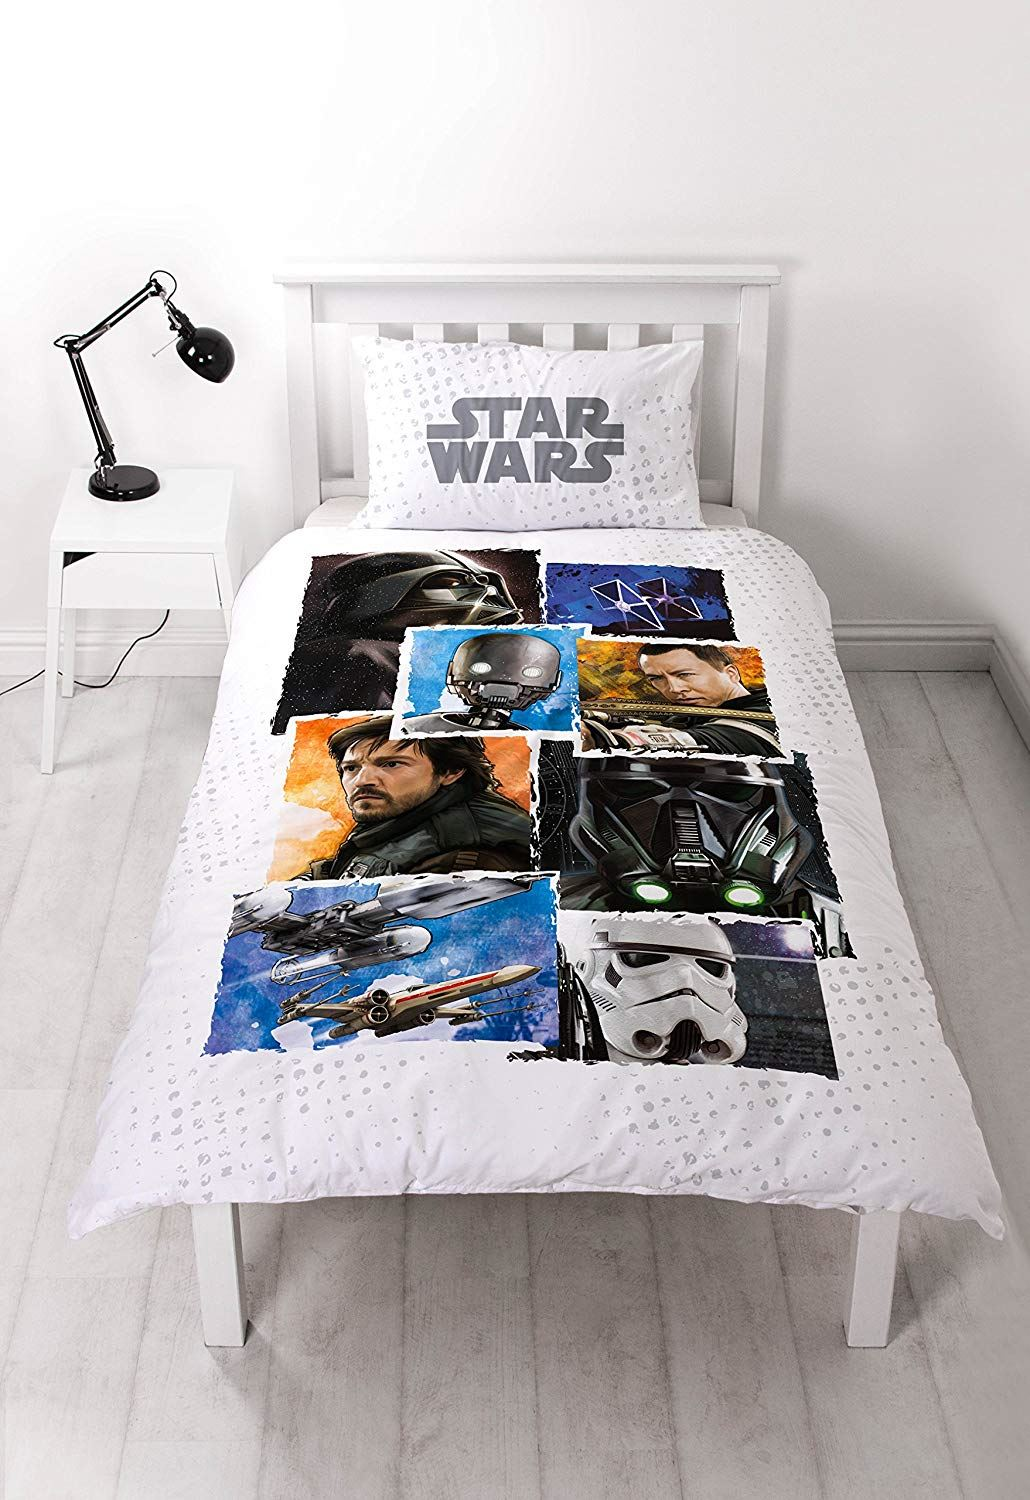 Official-Star-Wars-Licensed-Duvet-Covers-Single-Double-Jedi-Darth-Vader-Lego thumbnail 37